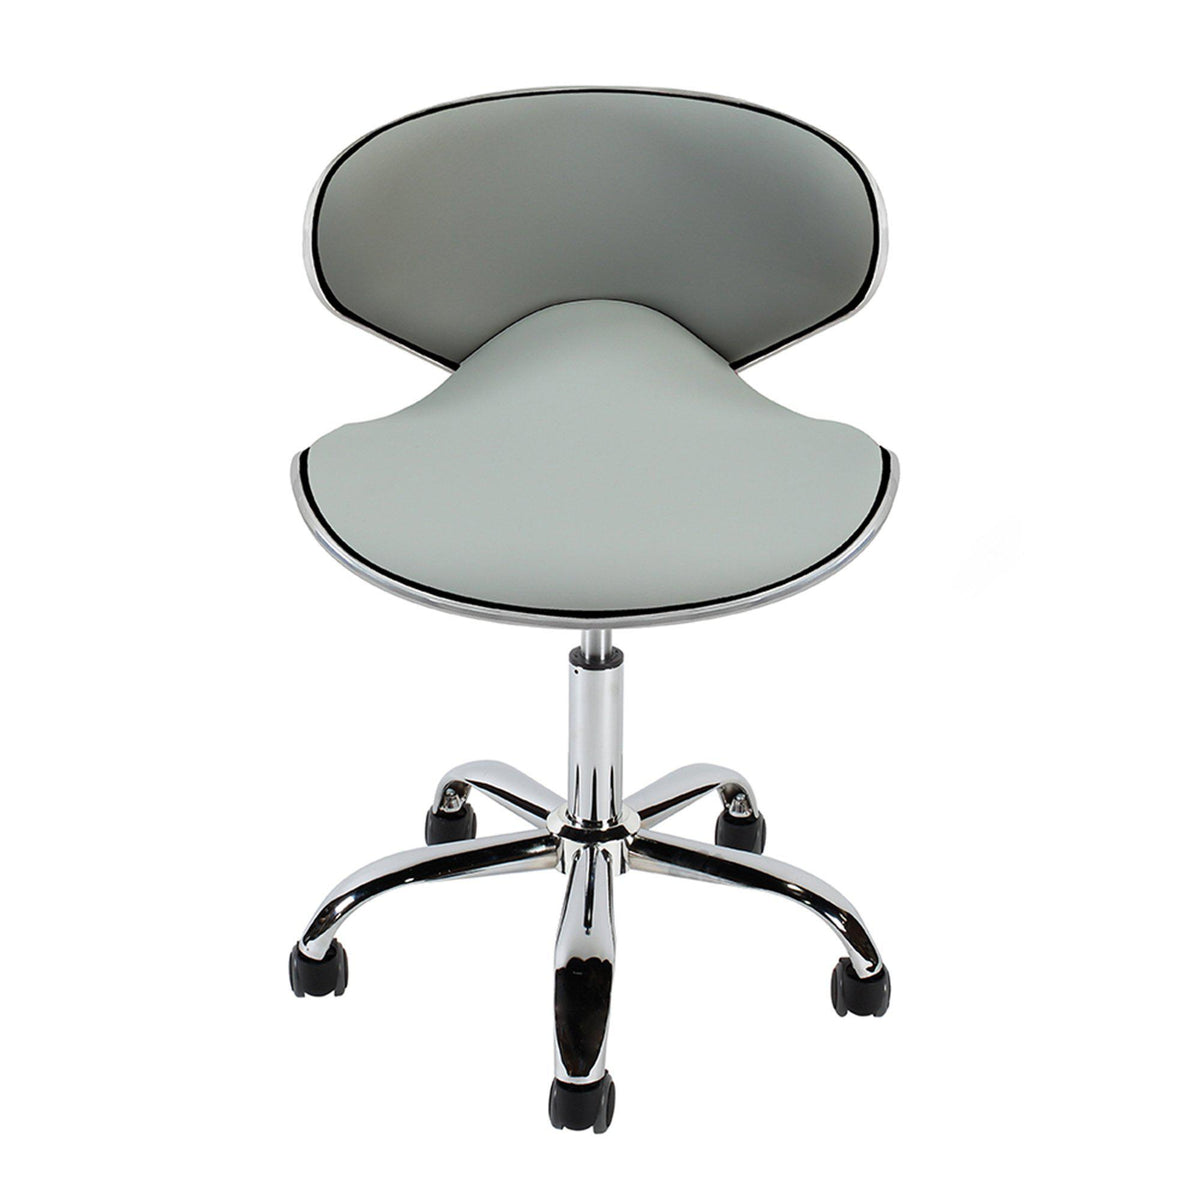 J & A - Euro Pedicure Manicure Technician Stool - Superb Nail Supply